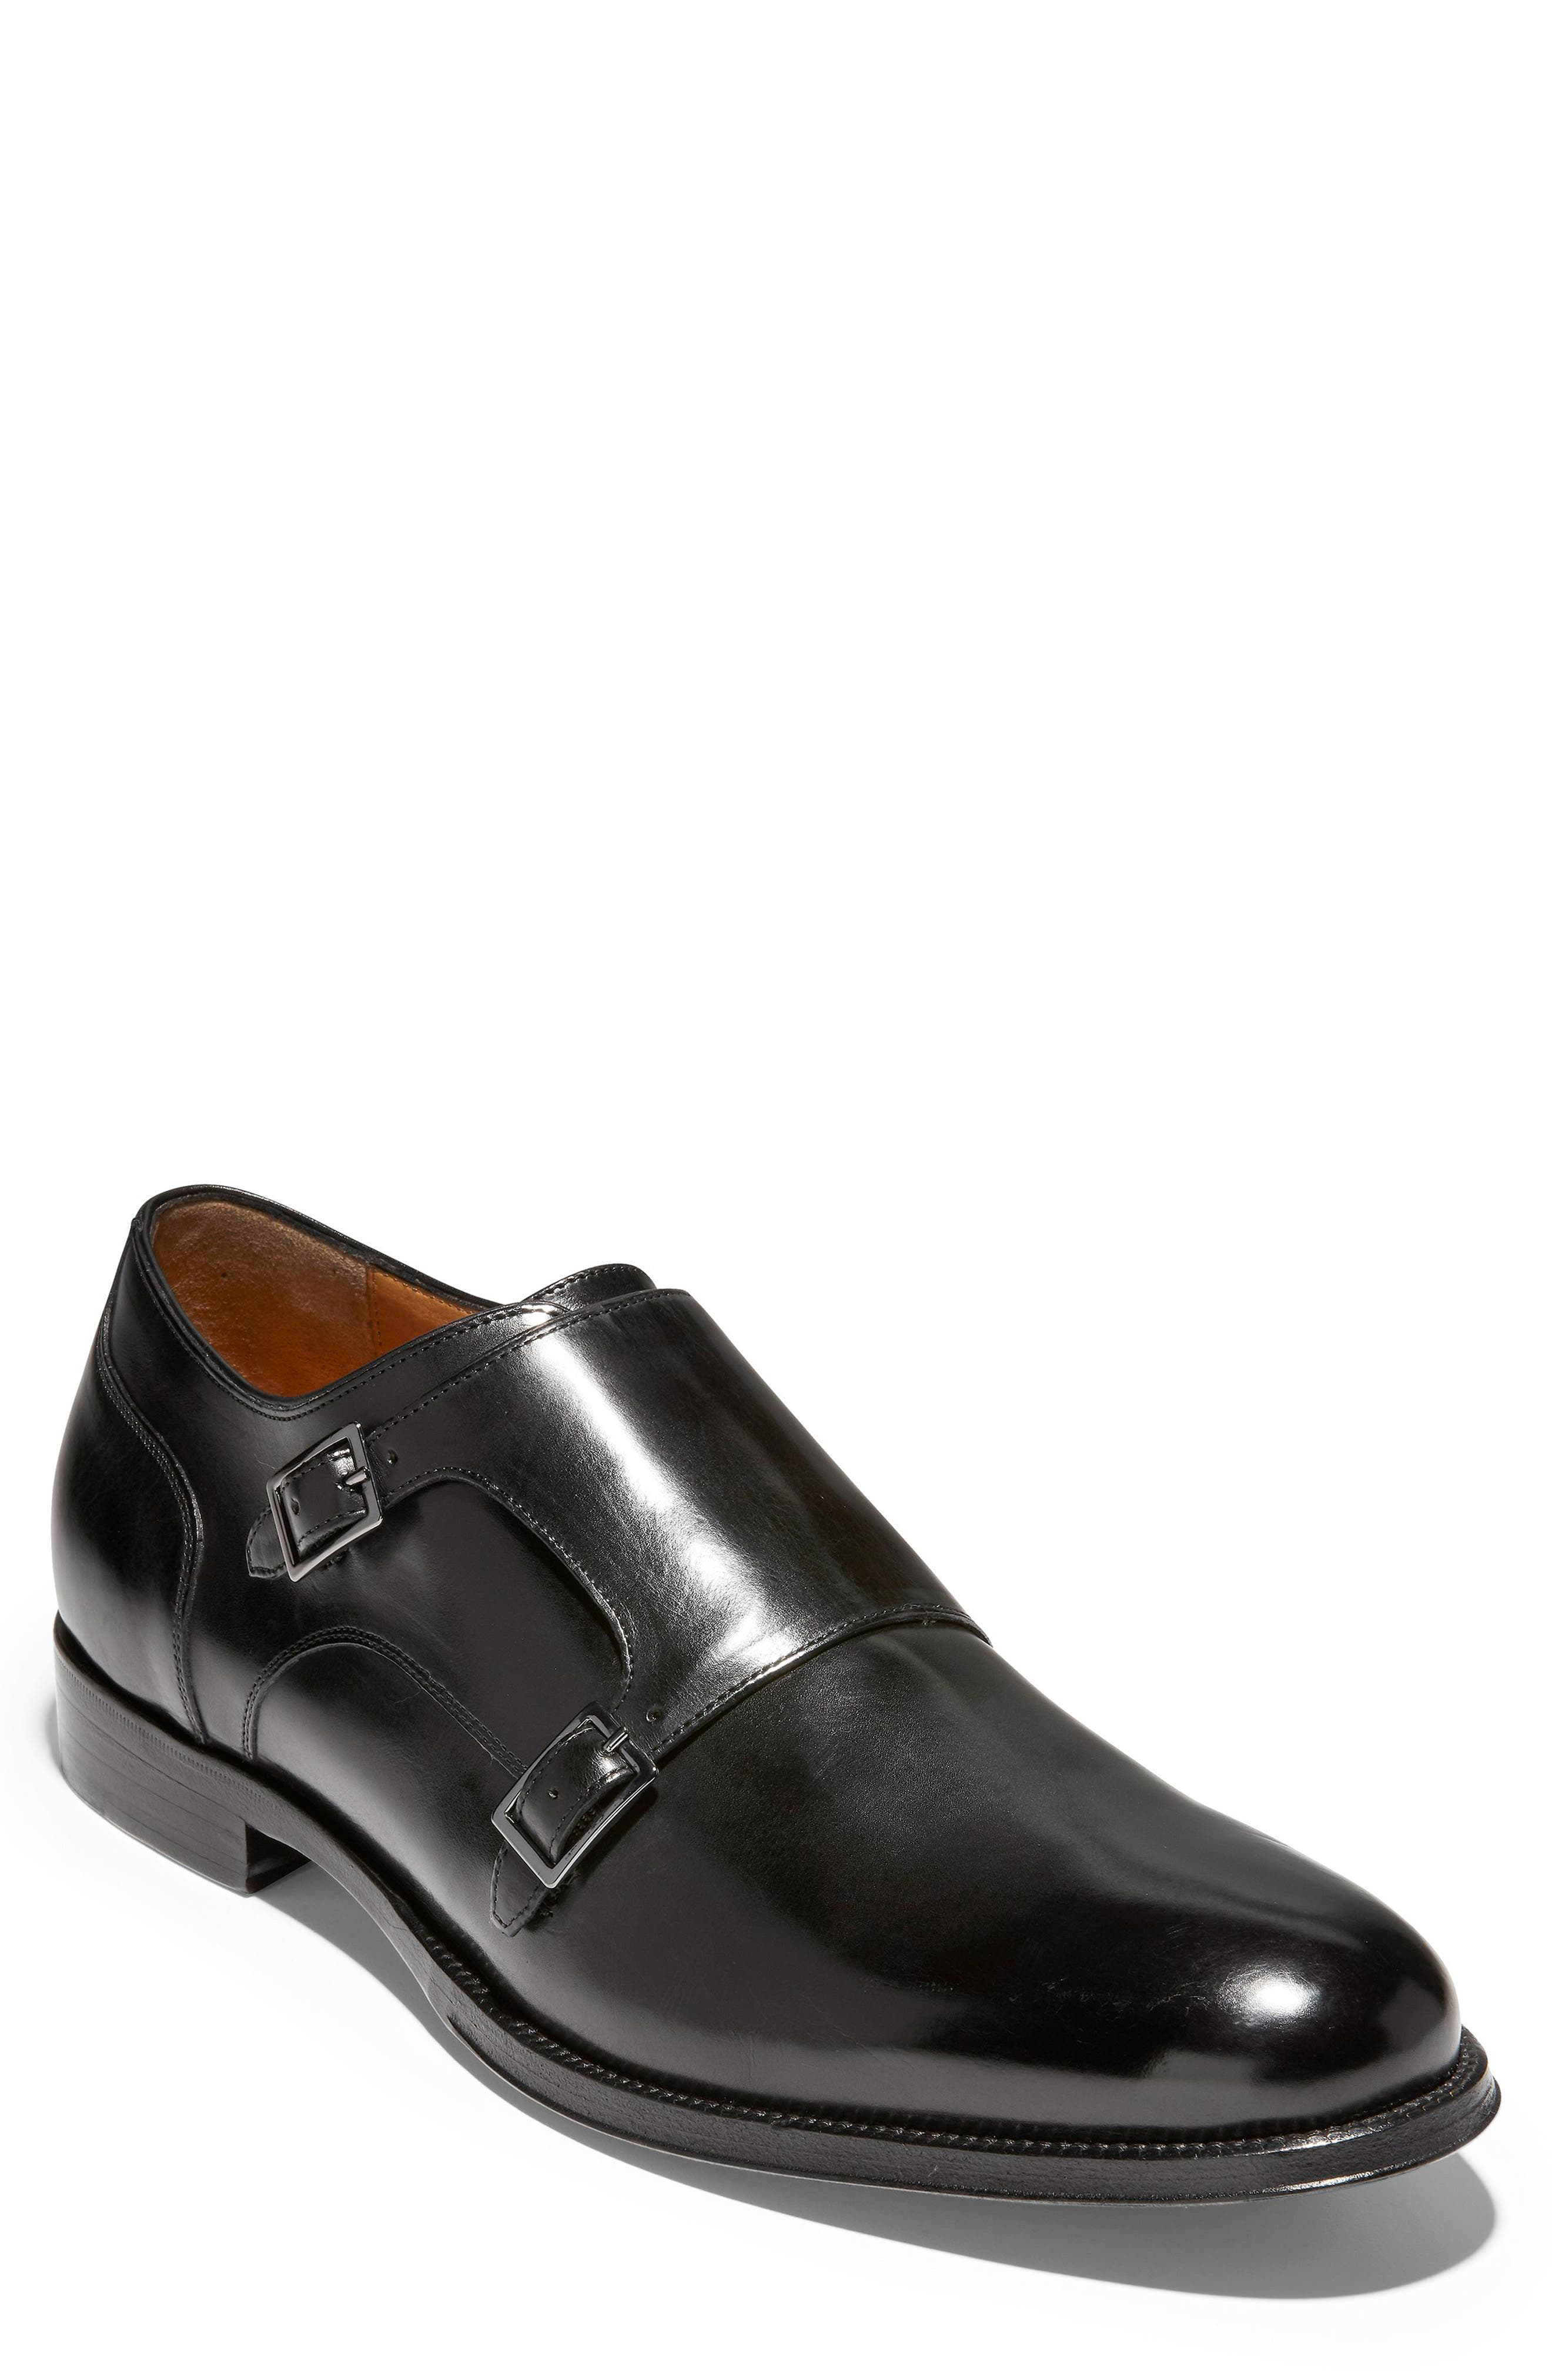 COLE HAAN American Classics Gramercy Double Strap Monk Shoe, Main, color, BLACK LEATHER